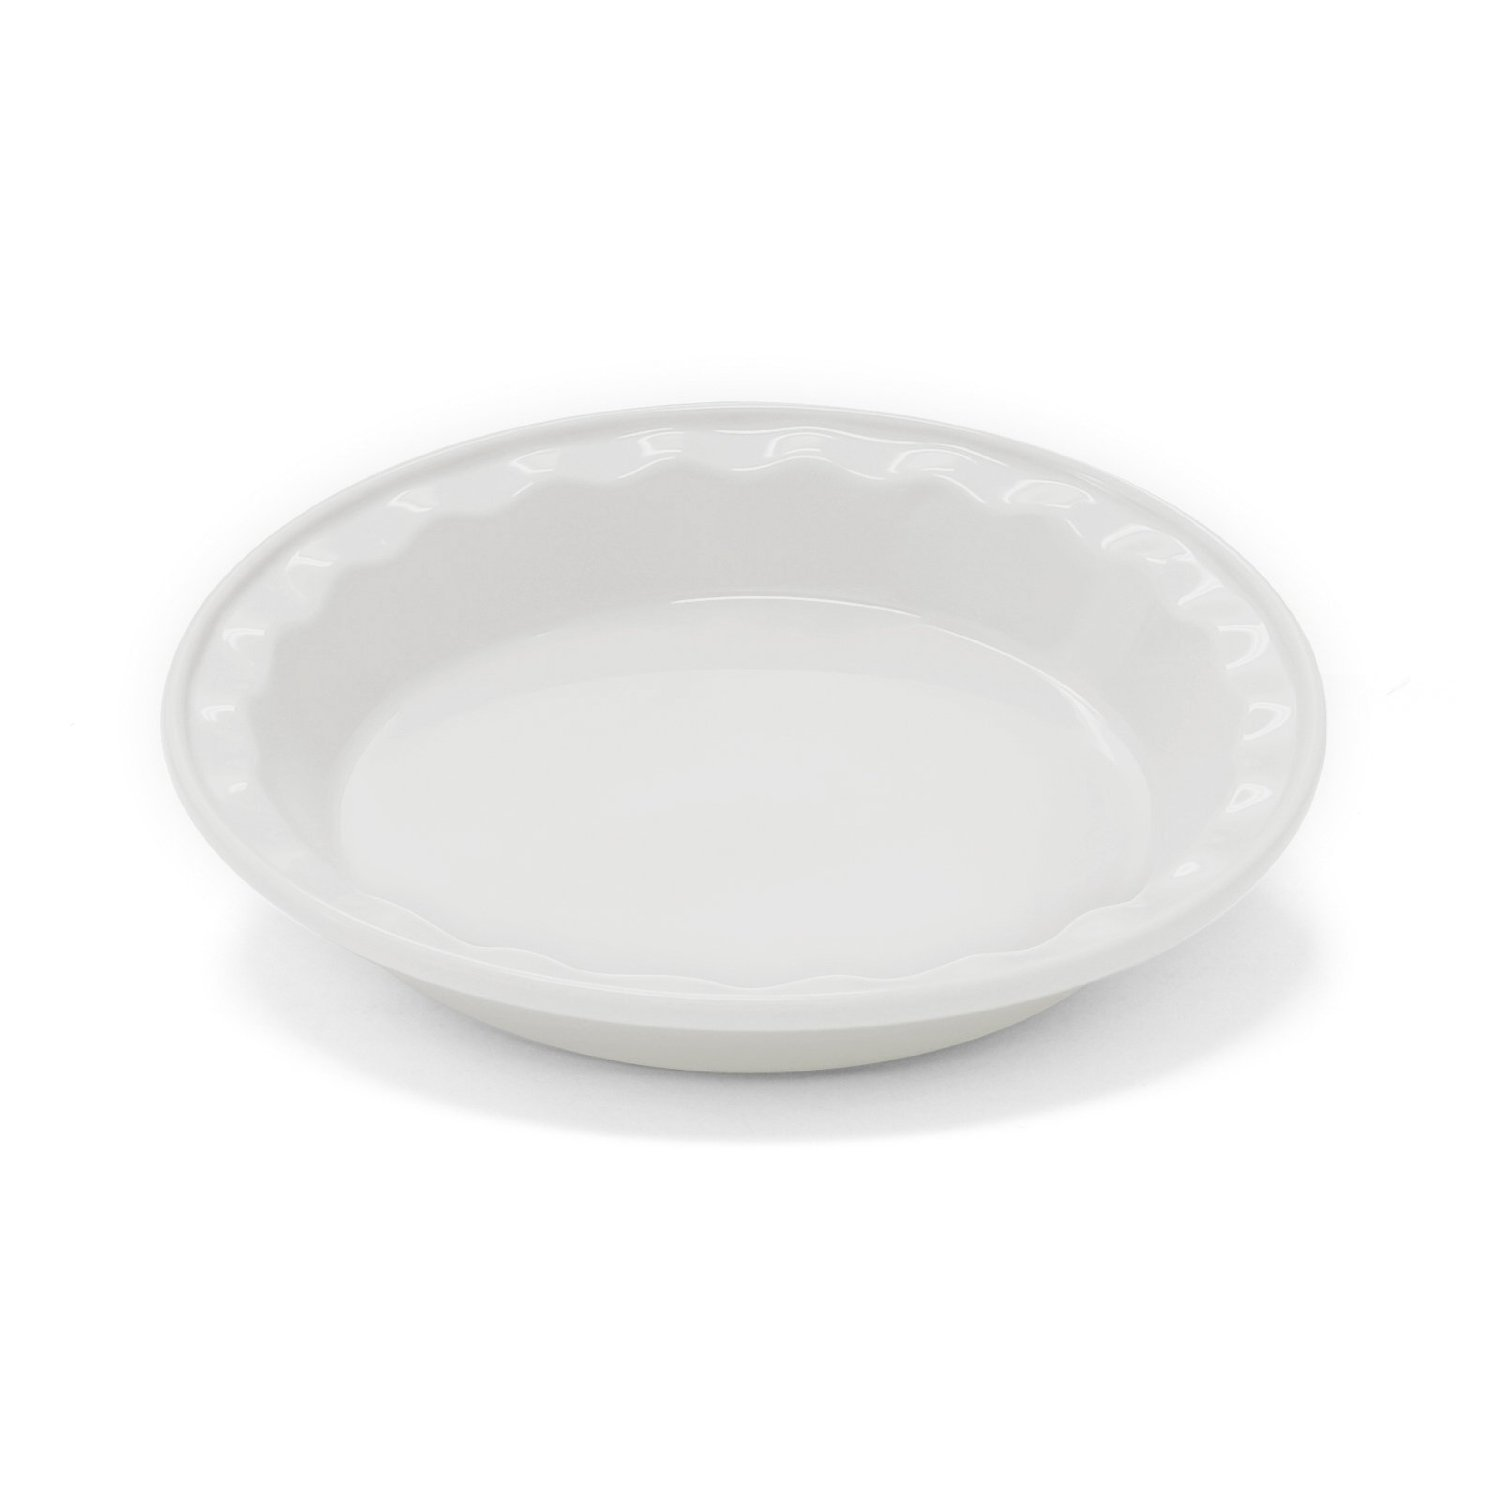 Chantal 9 Inch Easy As Pie-Dish, White